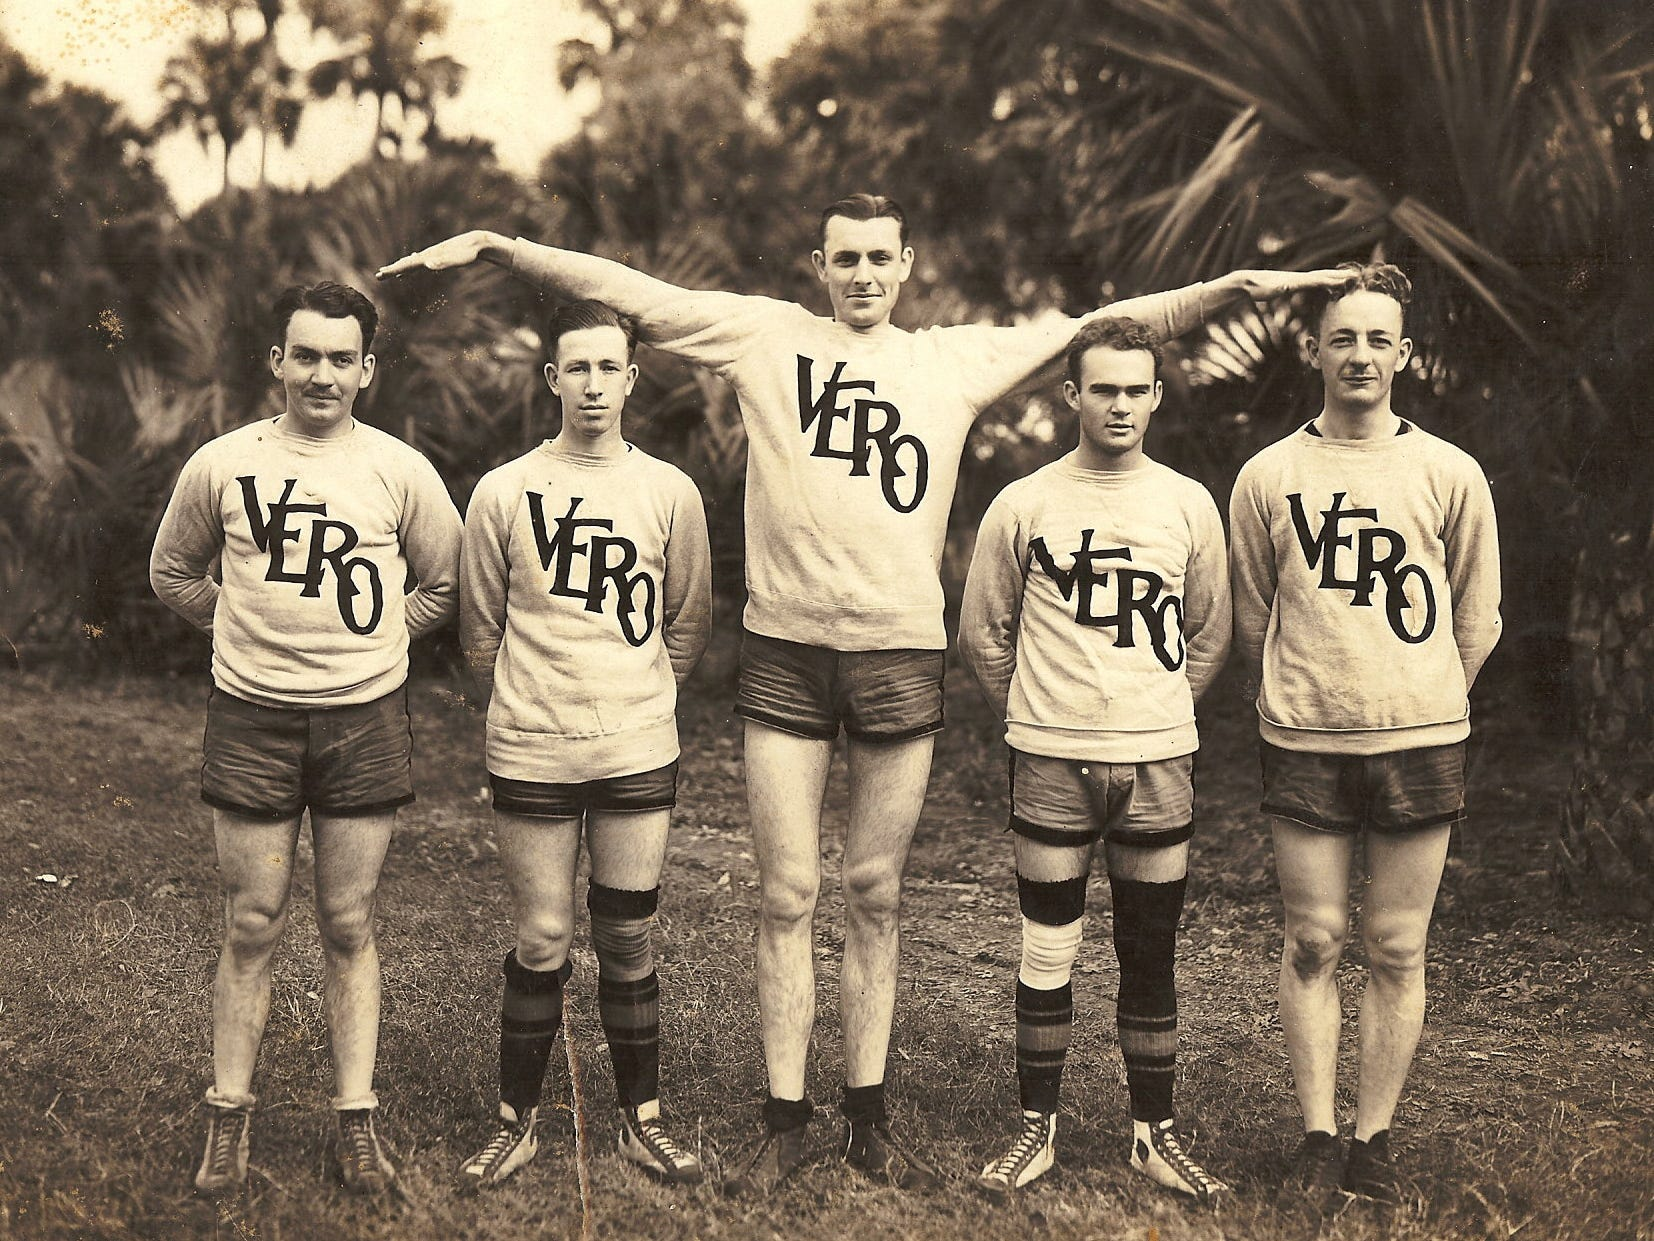 On March 13, 1926, the Vero Beach boys basketball team participated in the second annual state open championship tournament played in Vero Beach, and won against the Jacksonville Greenbacks. Pictured is Vero Beach's five-man basketball team in their orange and black uniforms from left: Sonny Horn, Rus Applegate, Tip Rice, Walter Shelton and Phillips. Local games were played on the Pocahontas Park basketball court.